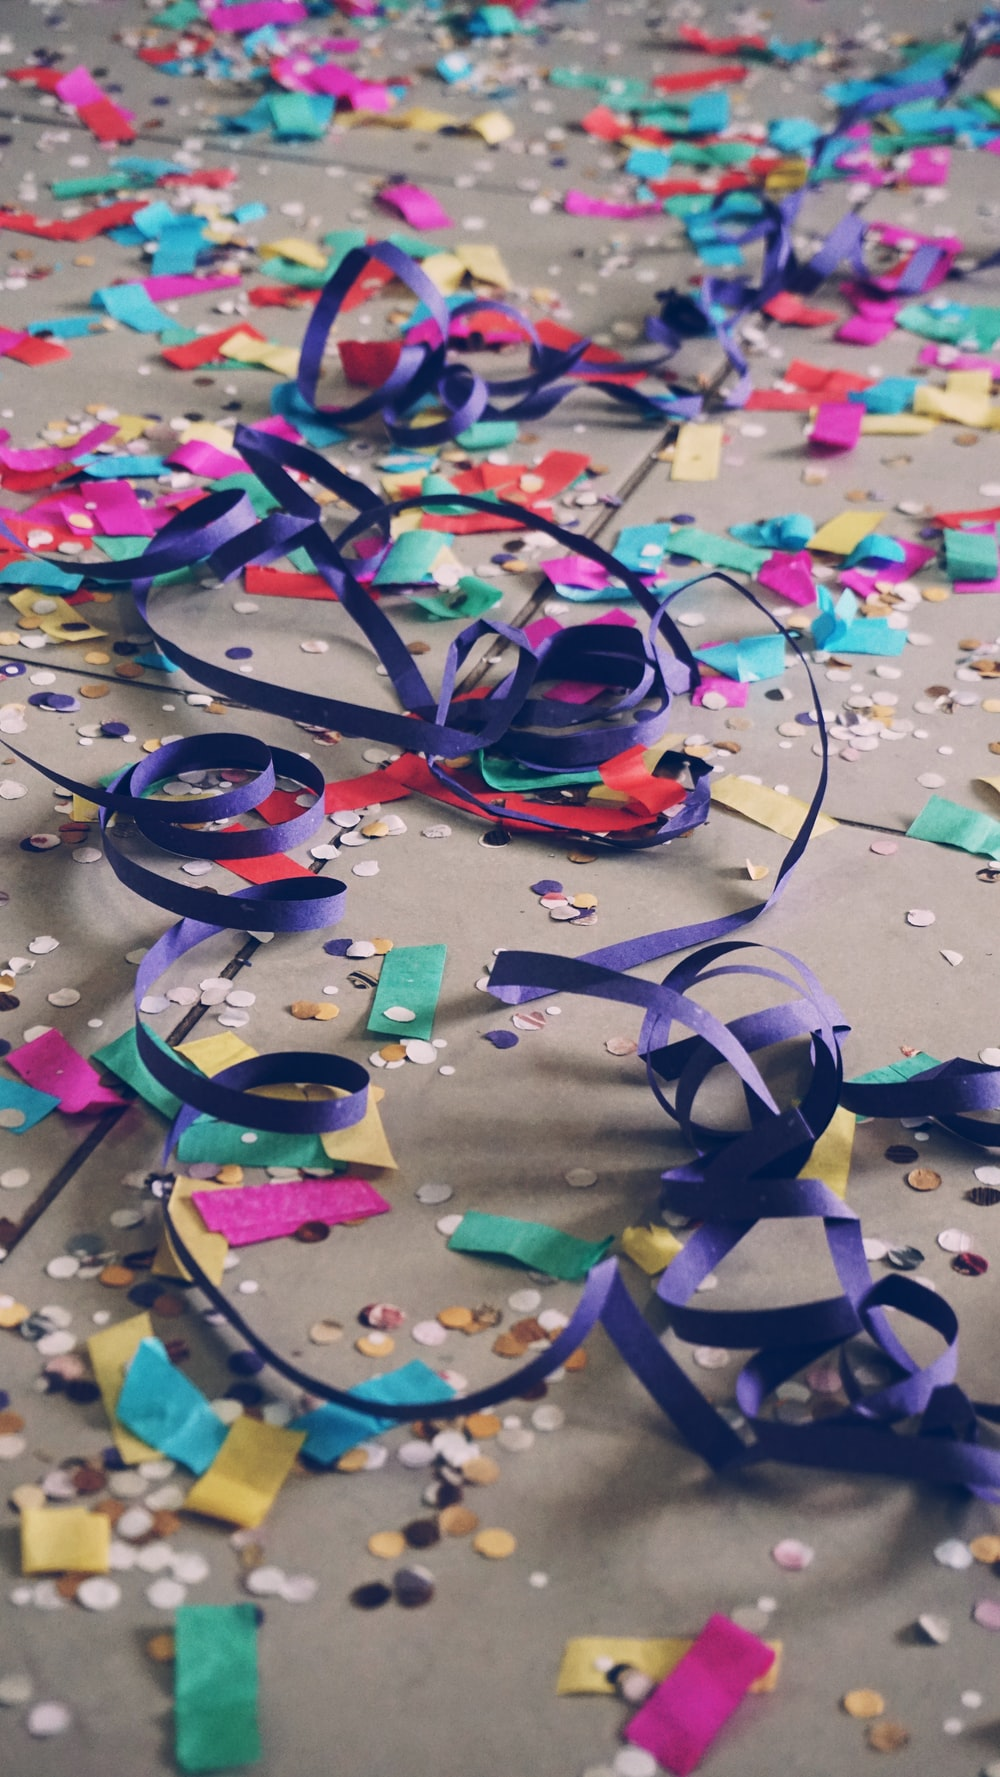 ribbons and confetti on floor